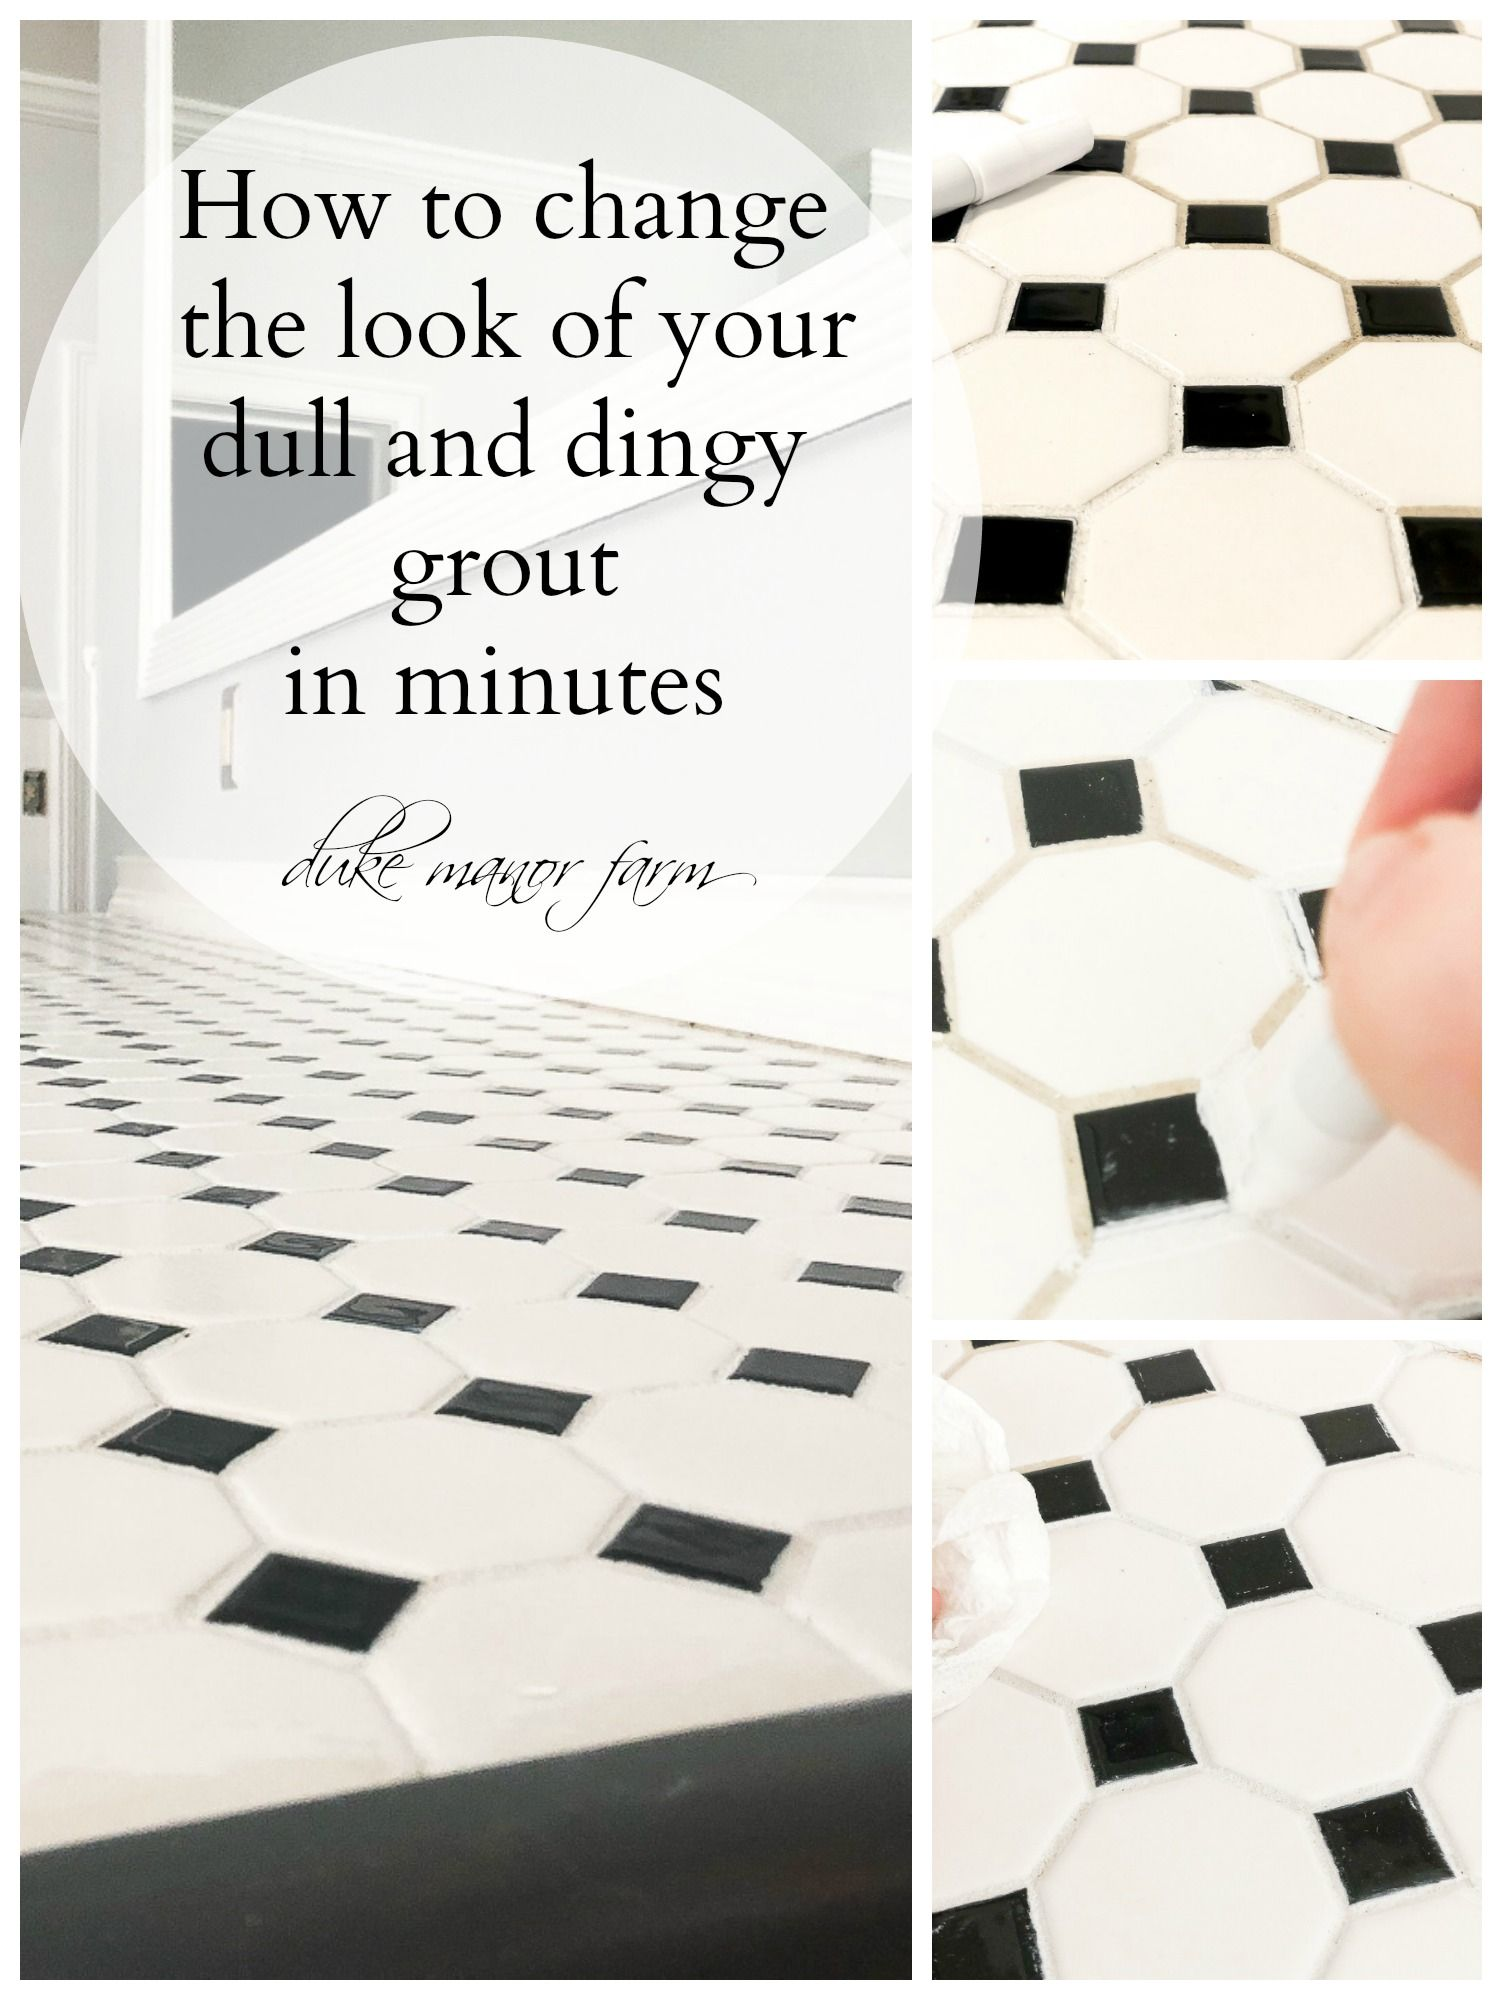 How To Change The Look Of Your Grout In Minutes By Spending 5 00 From Duke Manor Farm Grout Manor Farm Farm Design